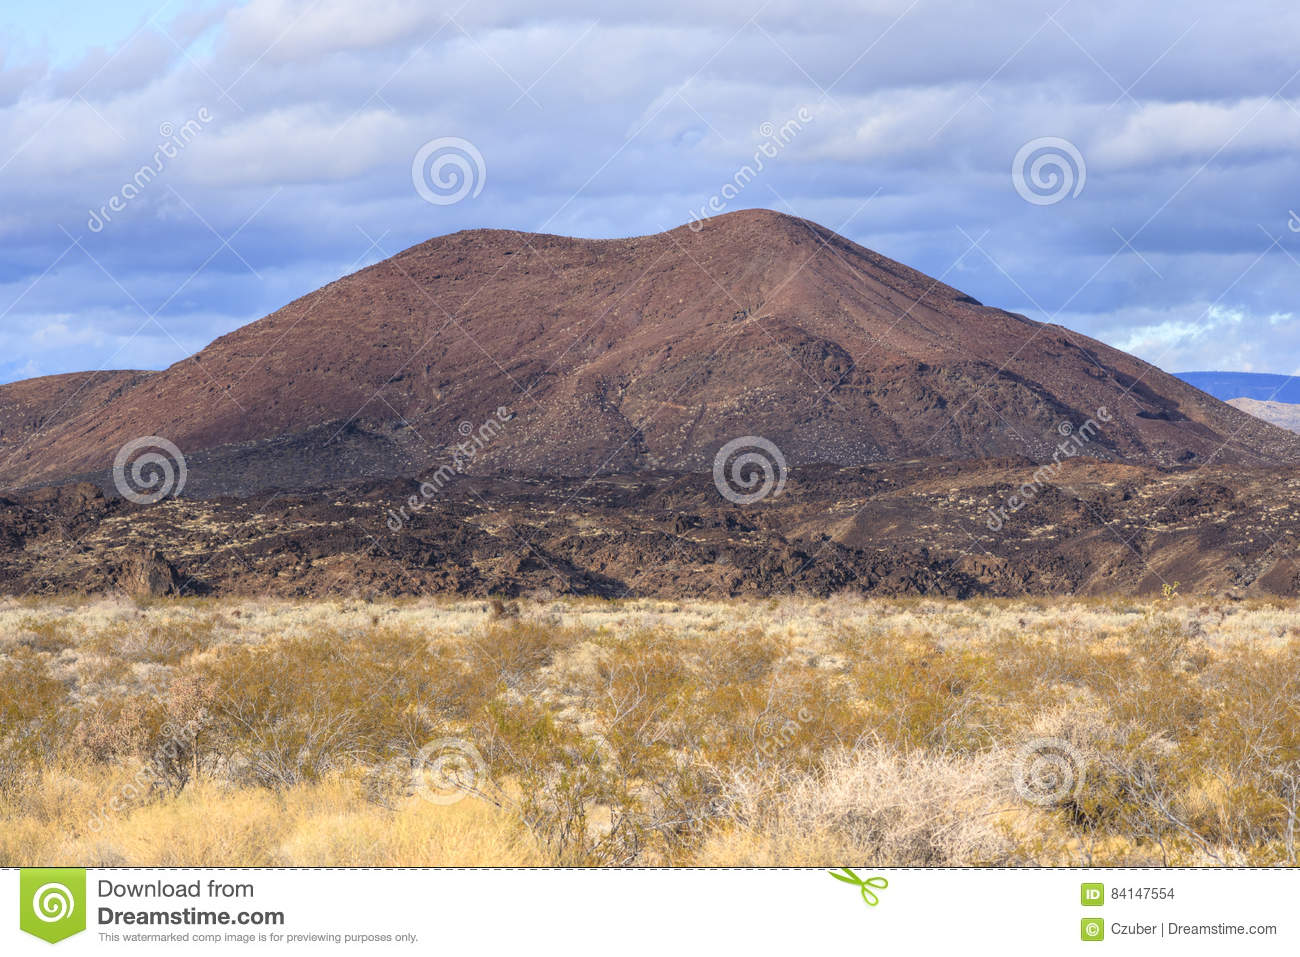 Volcanic Cinder Cone In Mojave Desert Of California Stock Photo ...